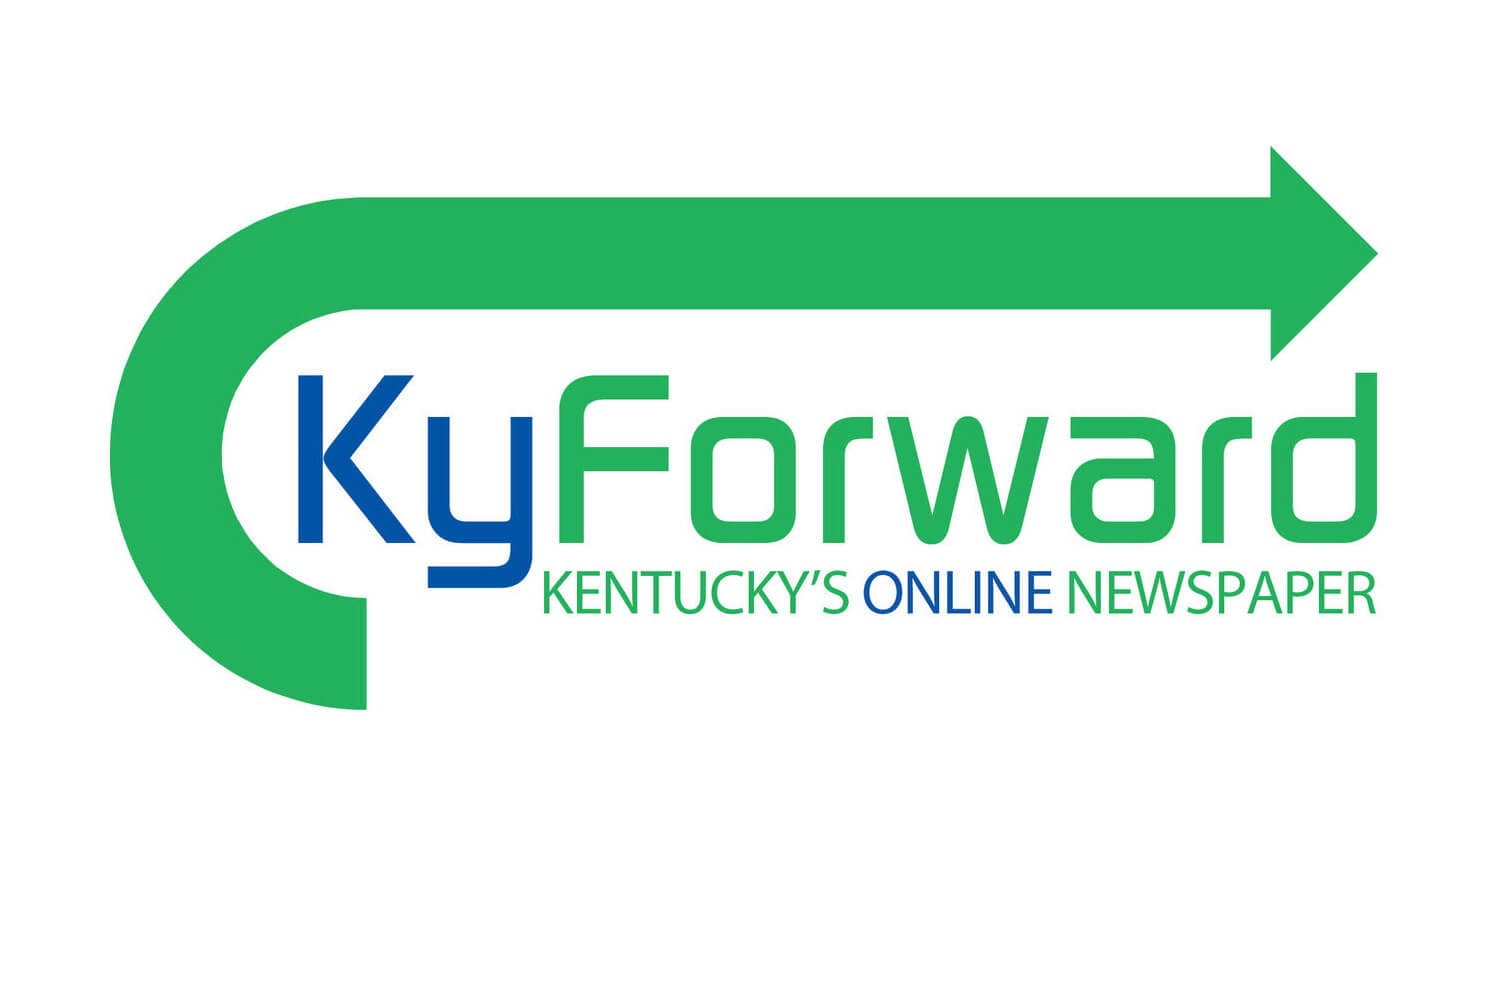 KyForward.com delivers personalized news to the Commonwealth